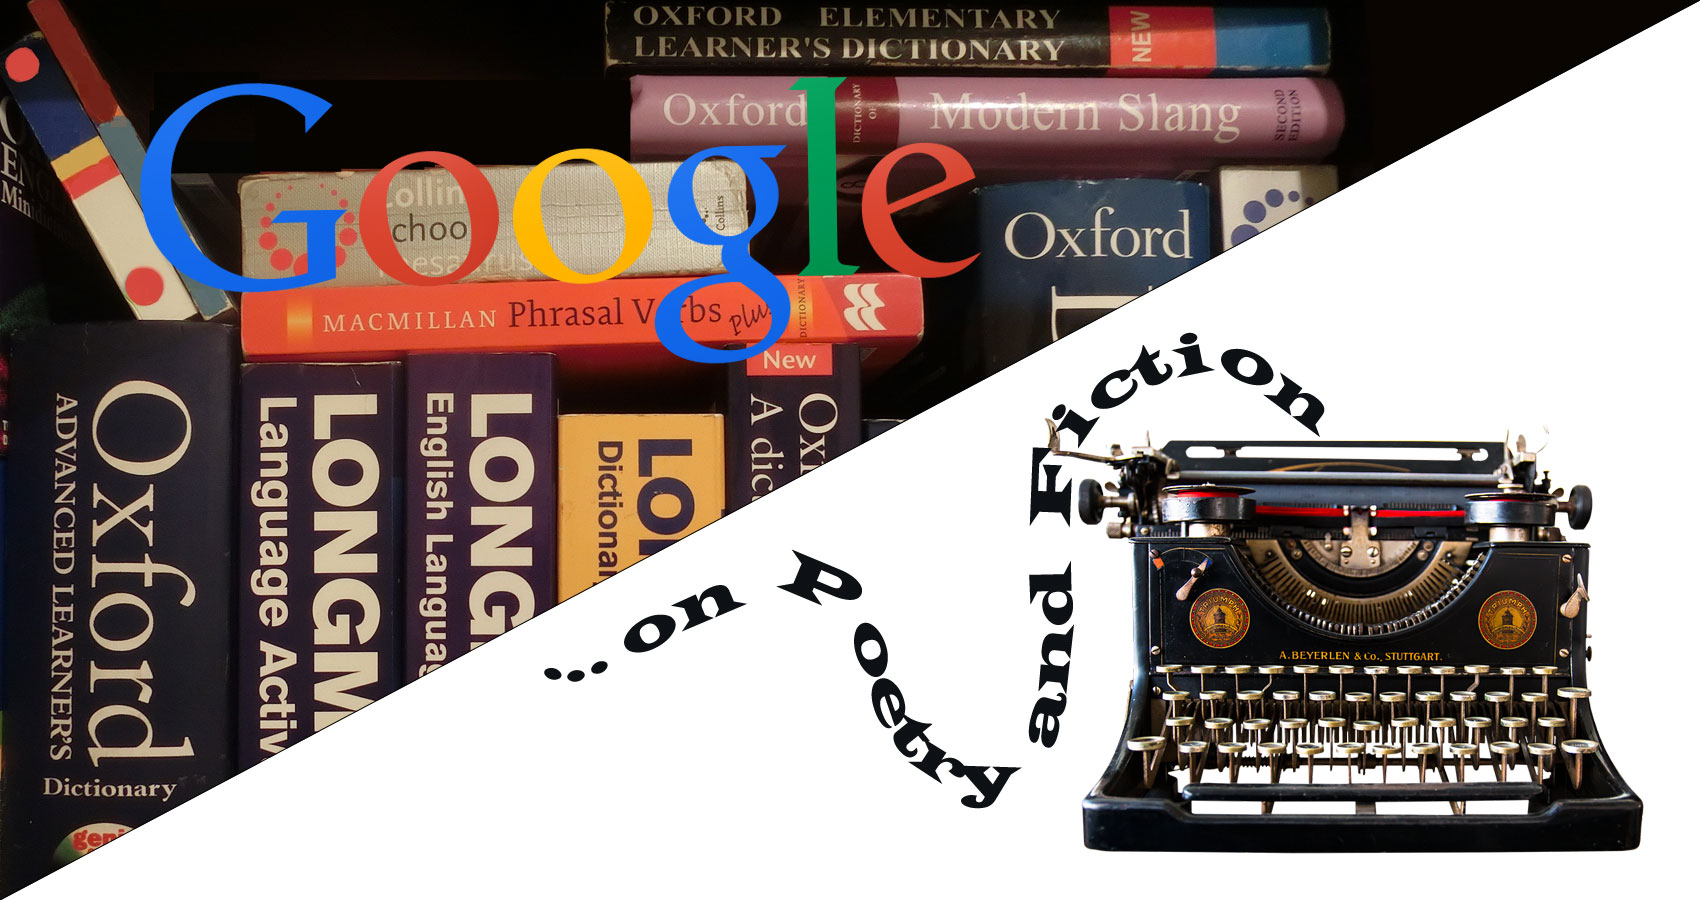 ...on Poetry and Fiction - The Dictionary, Thesaurus and Google are Your New Best Friends by Phyllis P. Colucci at Spillwords.com